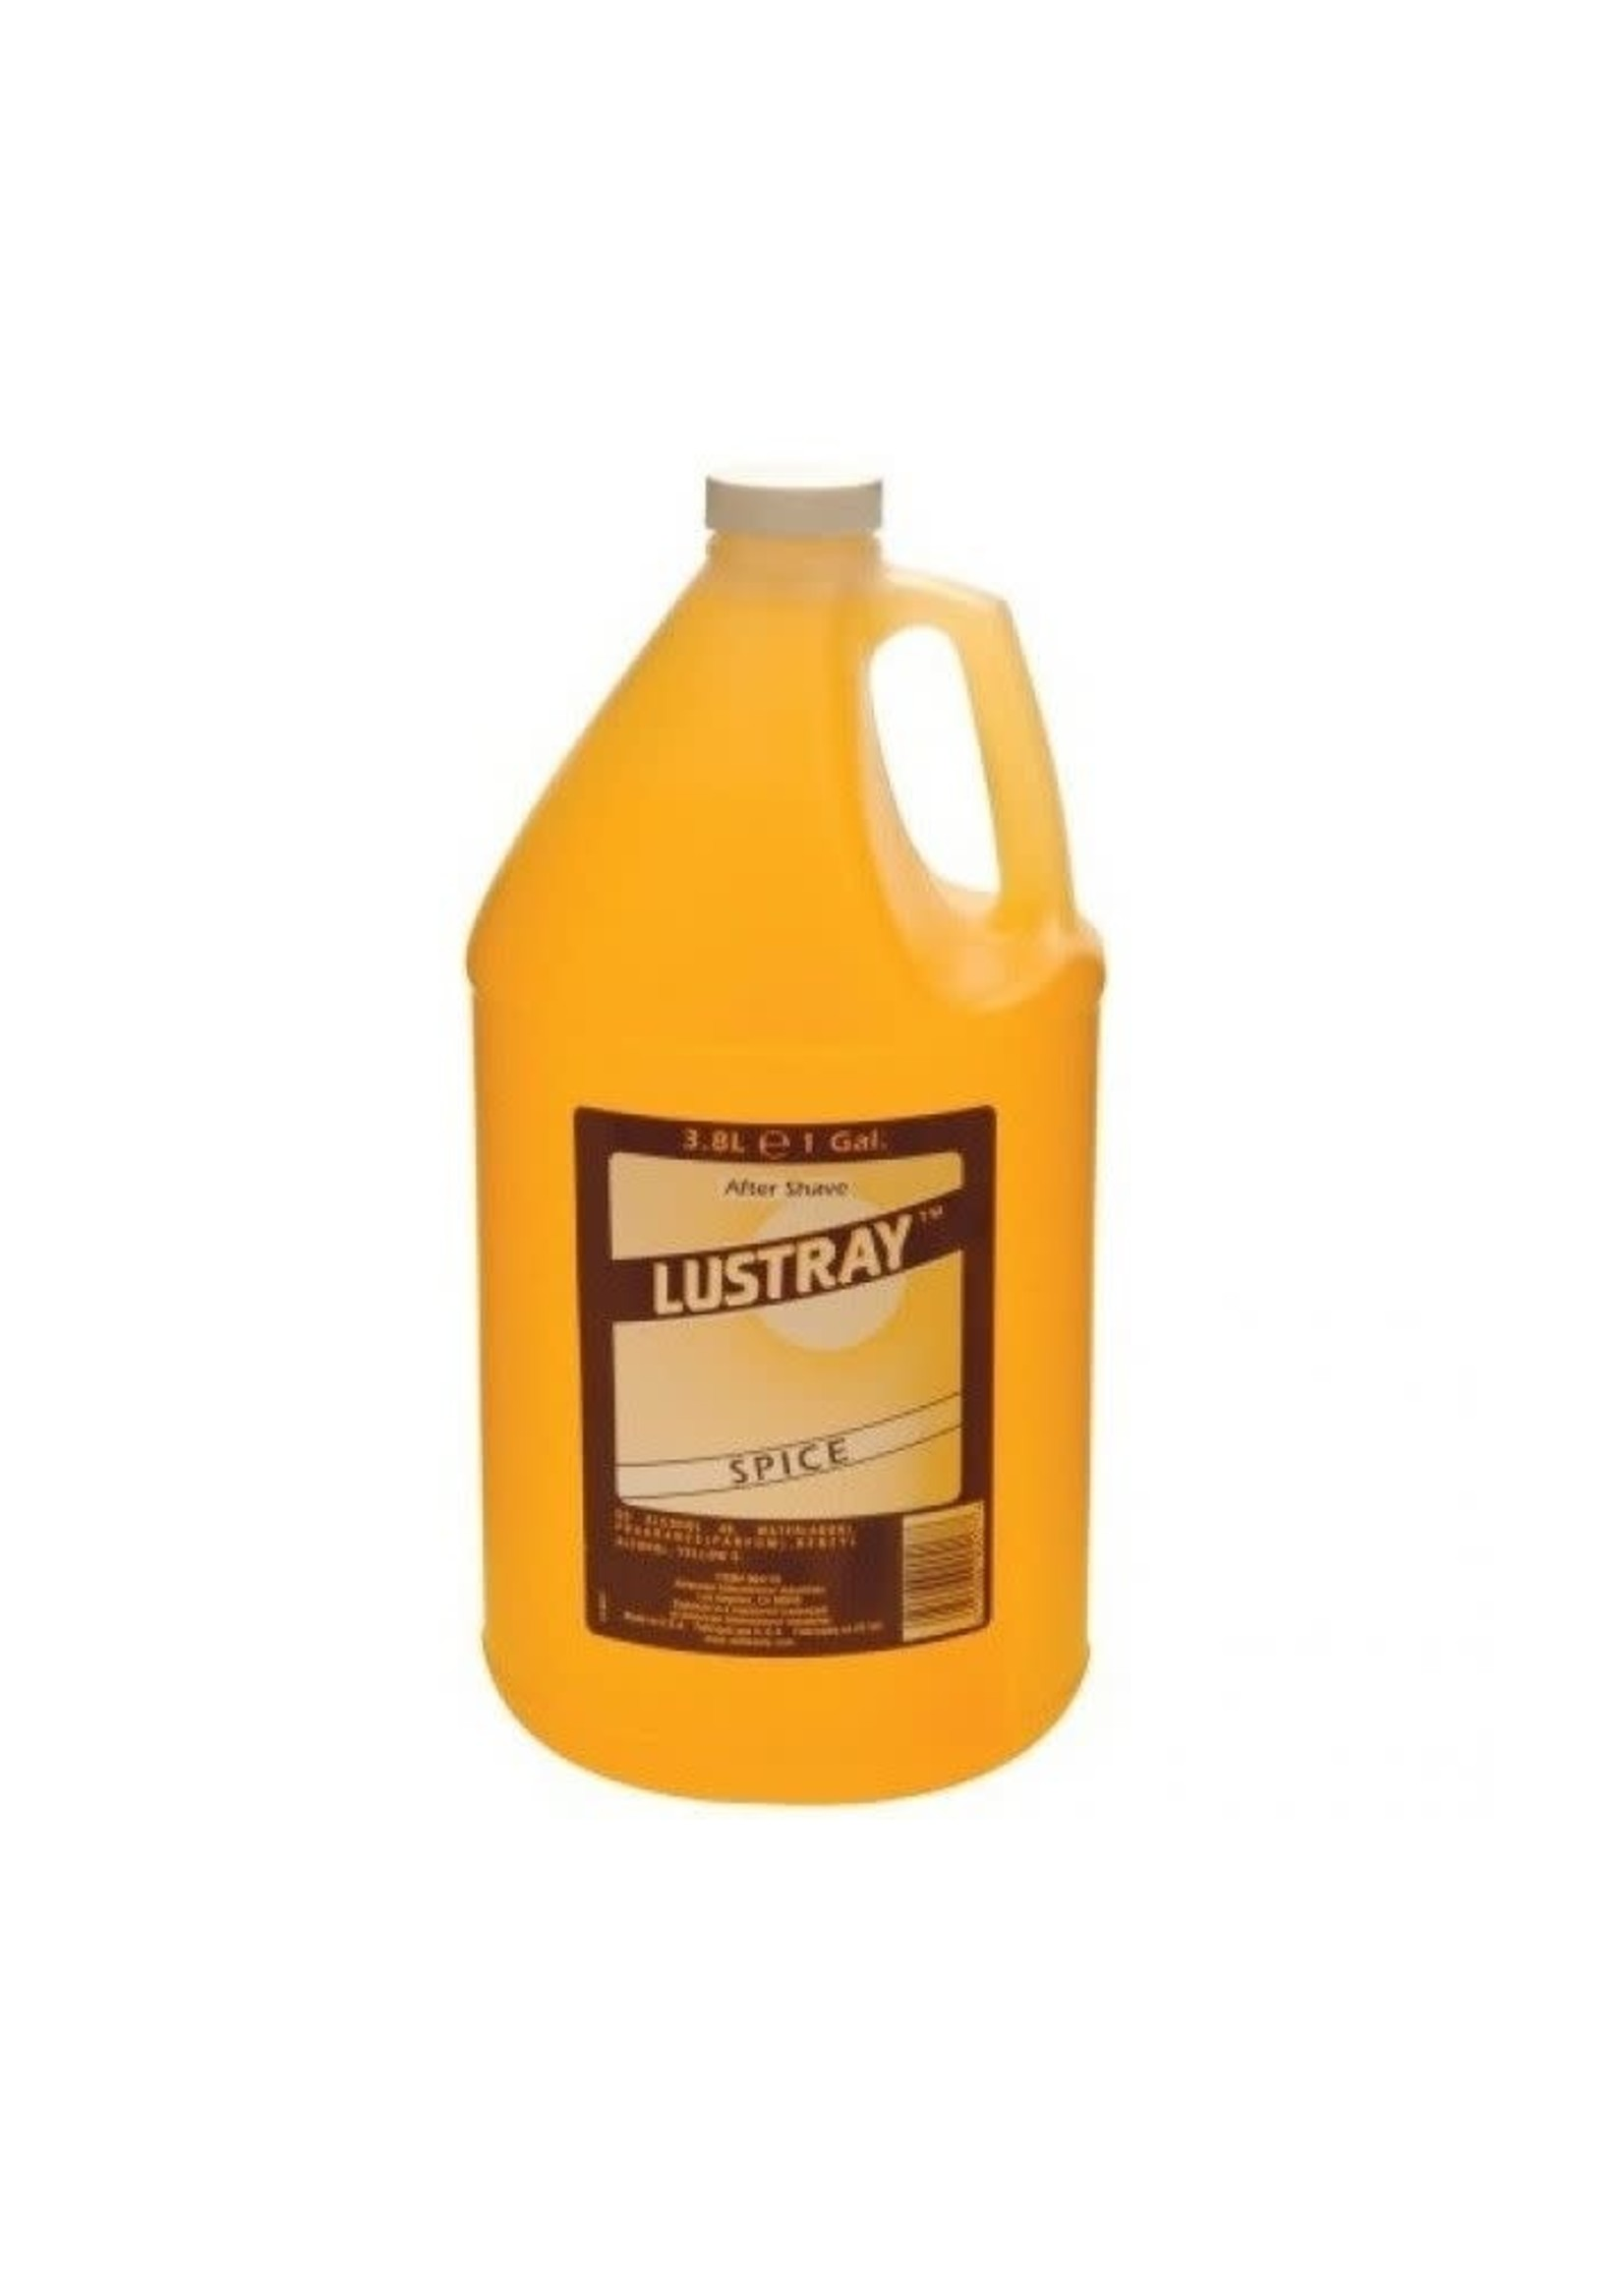 Clubman Lustray Spice- 1 gallon